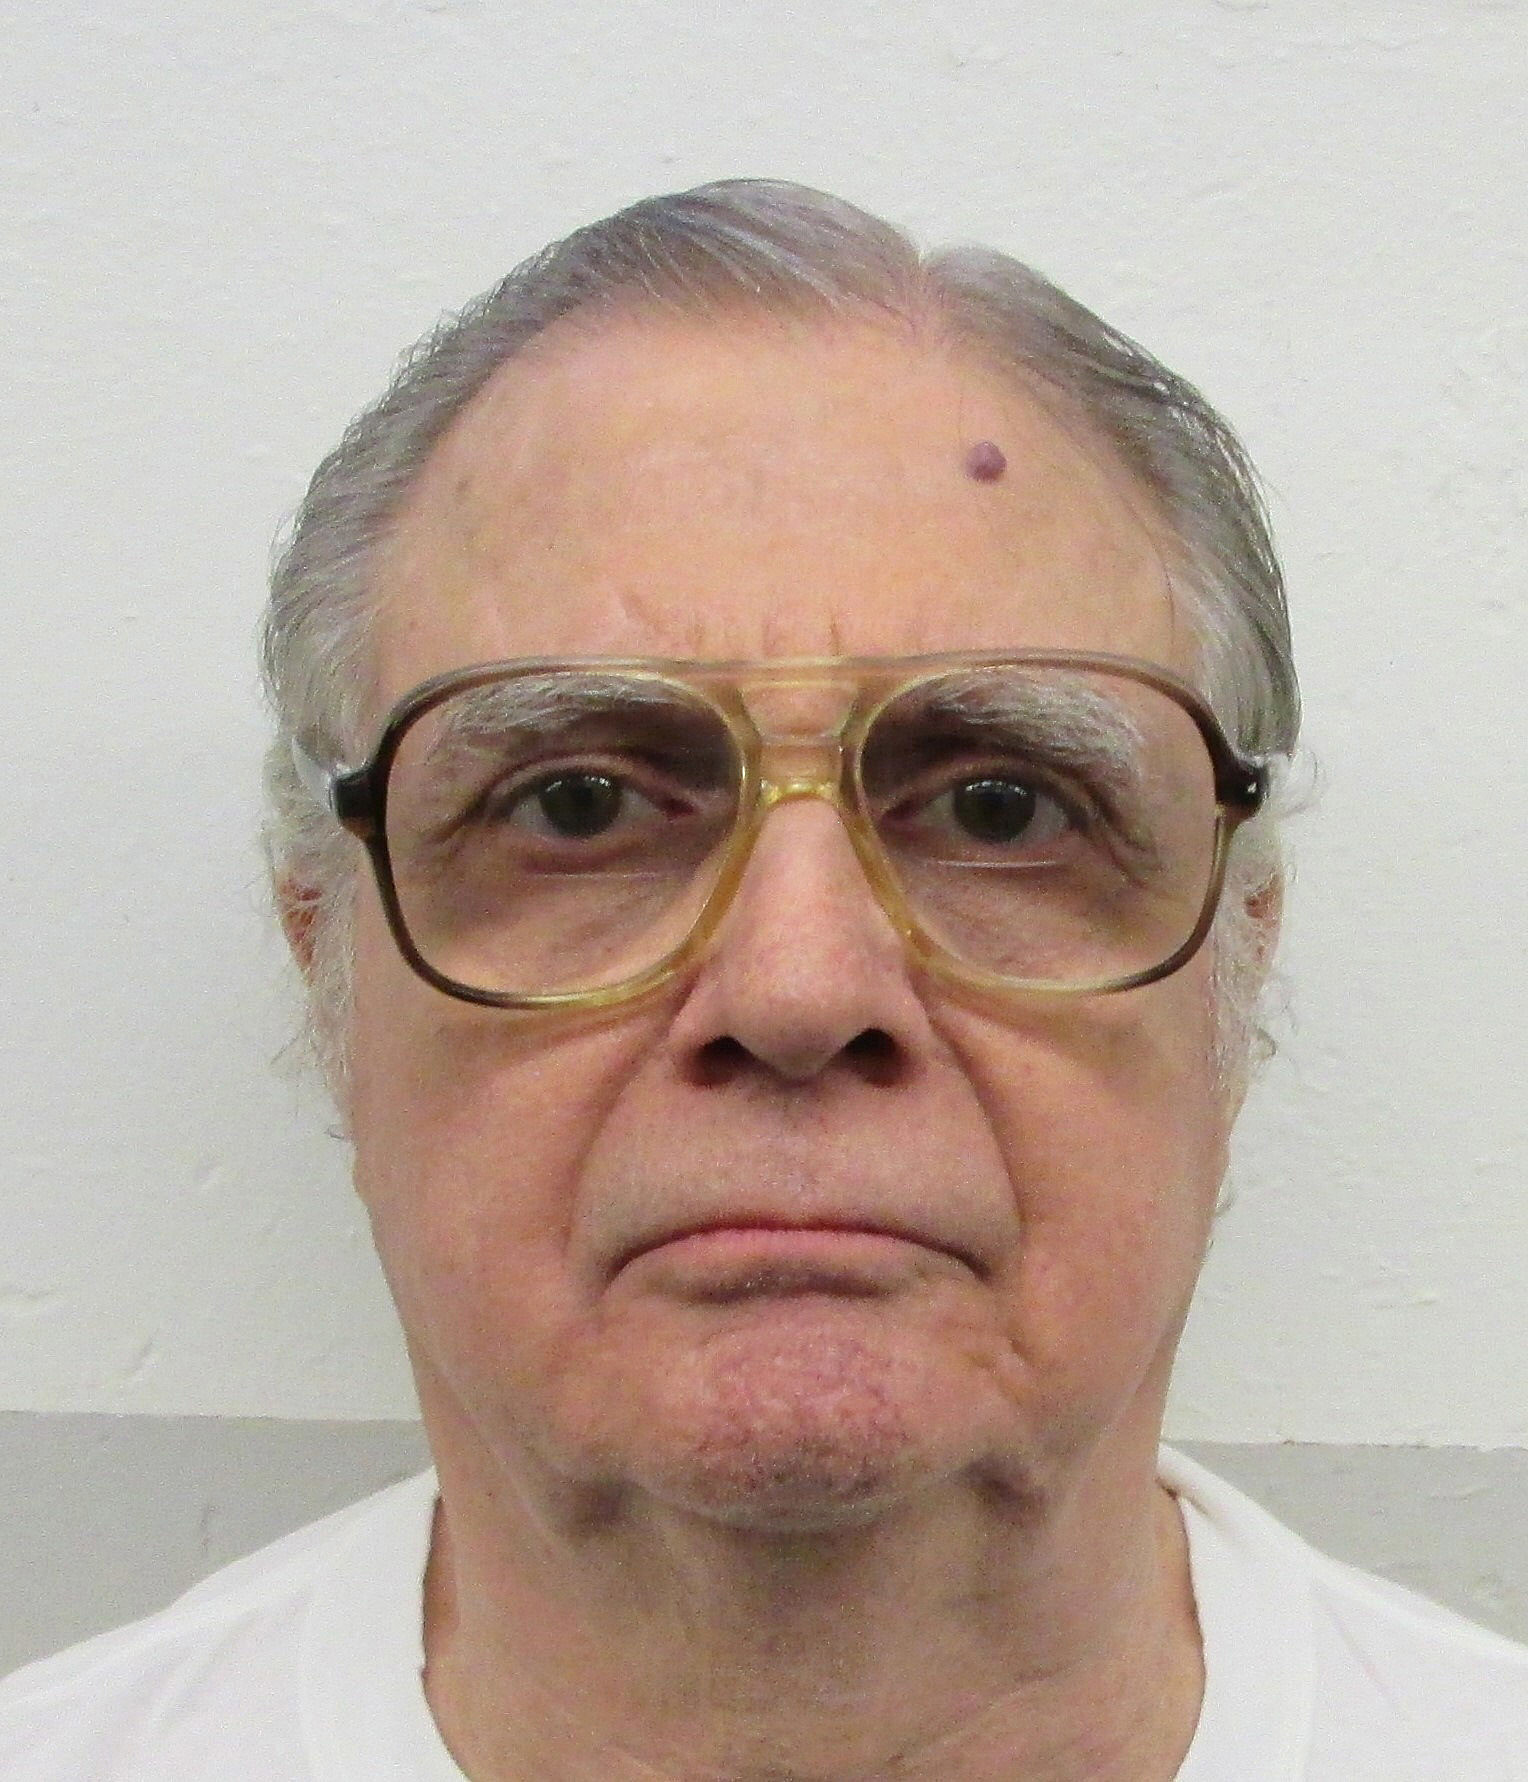 U.S. Supreme Court lifts stay, clearing way for execution of Alabama's 'Houdini of death row'